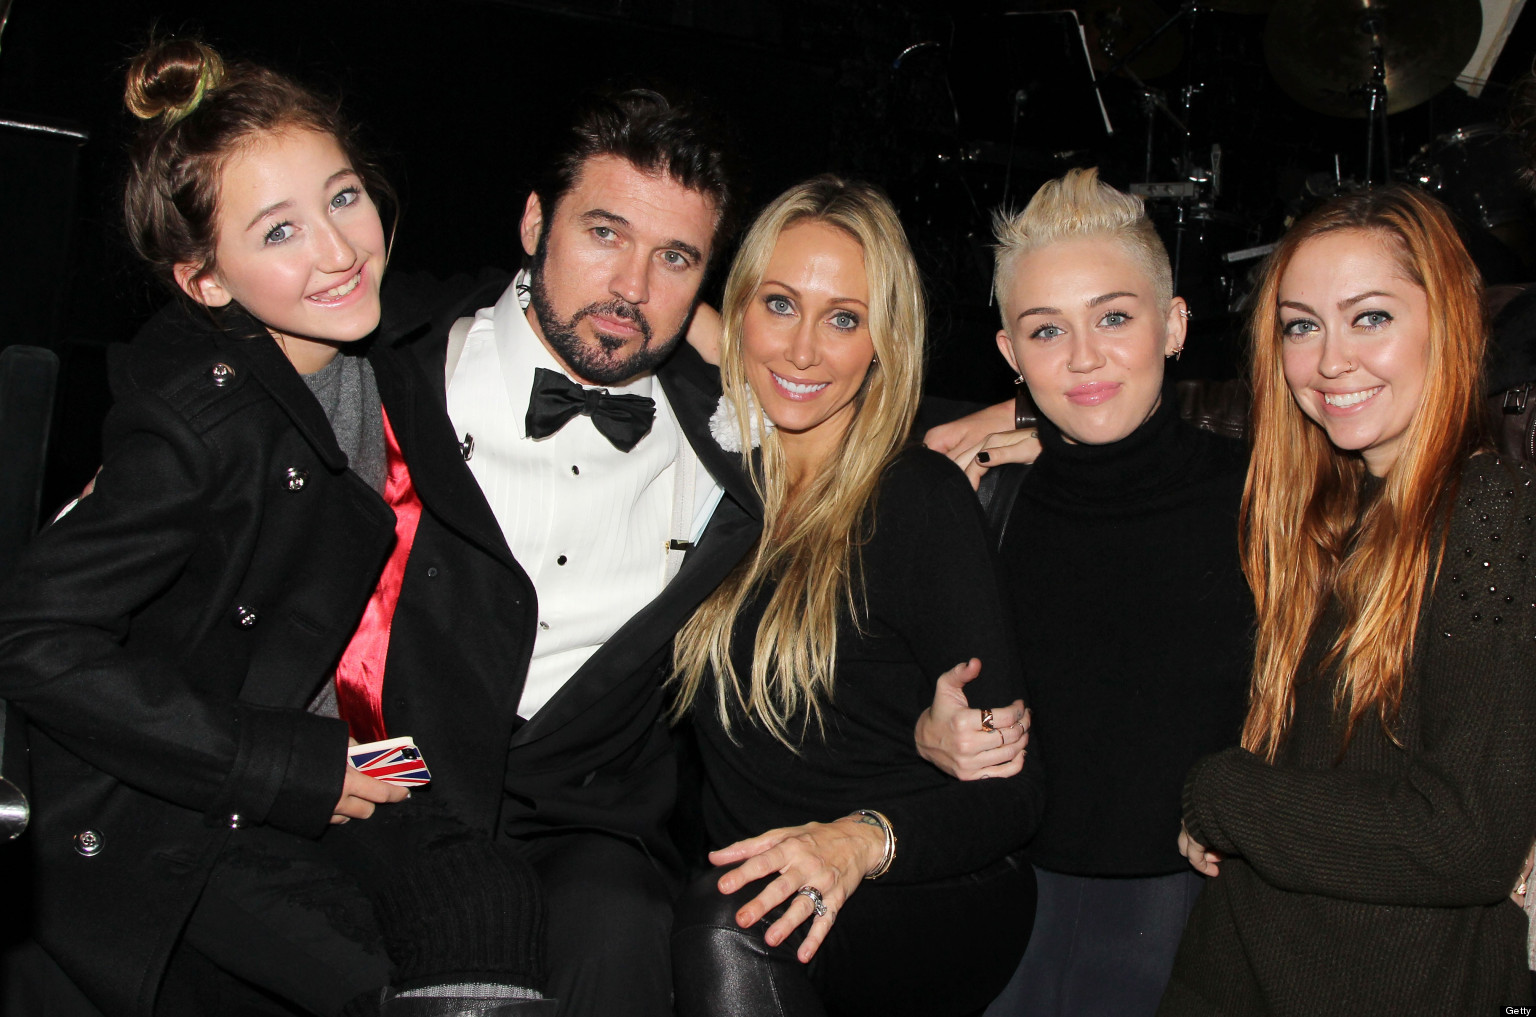 Billy ray cyrus orce youngest child noah responds the huffington